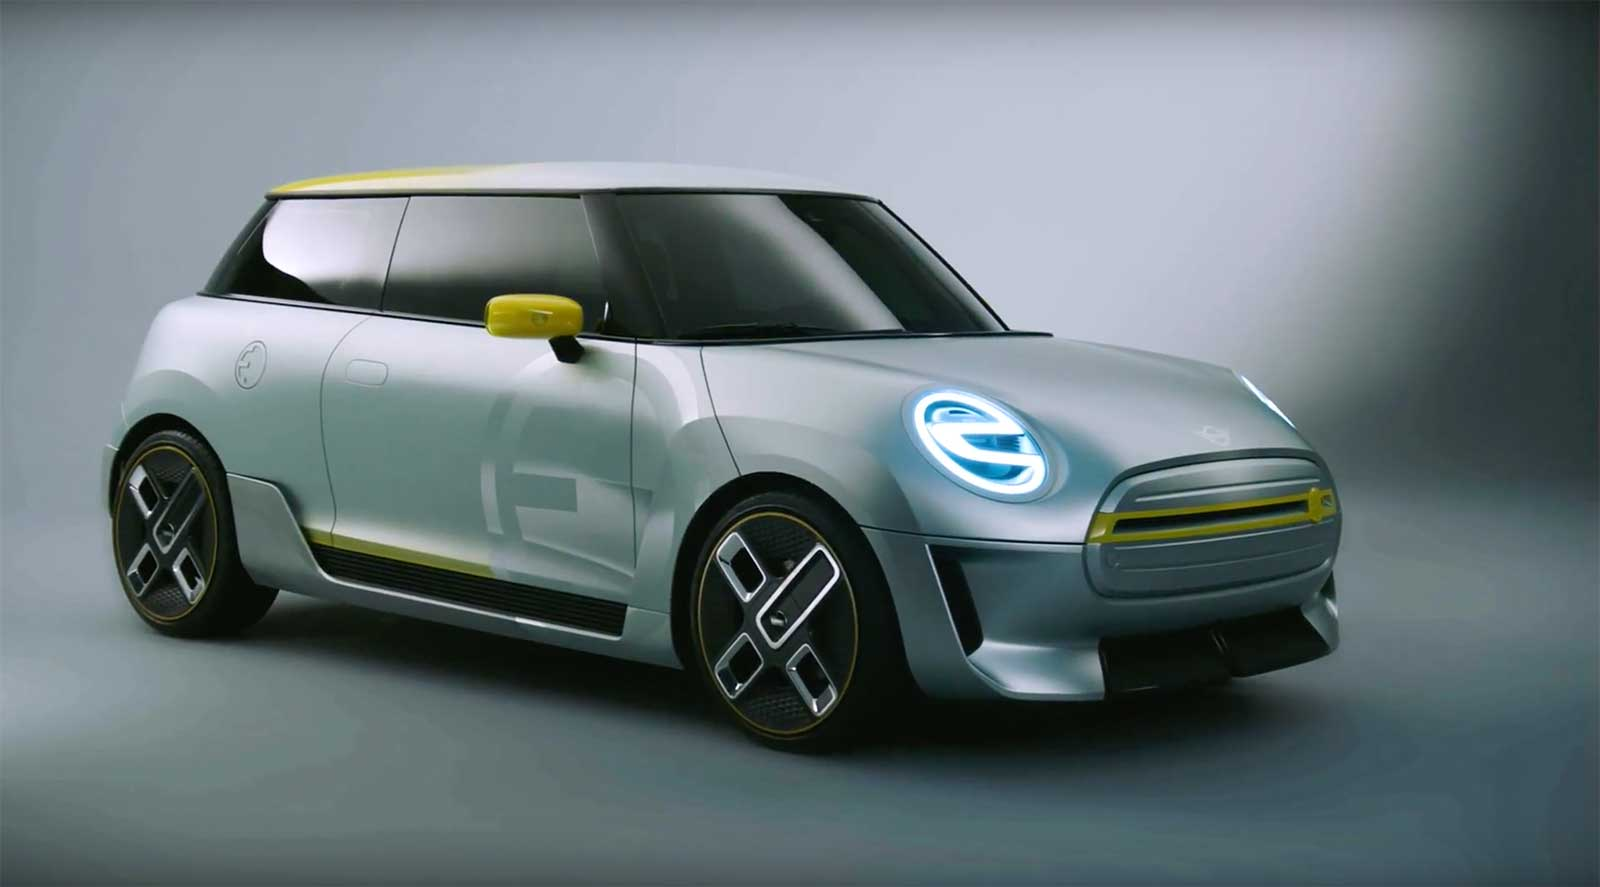 63 Best Review 2019 Mini Cooper Electric Price and Review for 2019 Mini Cooper Electric